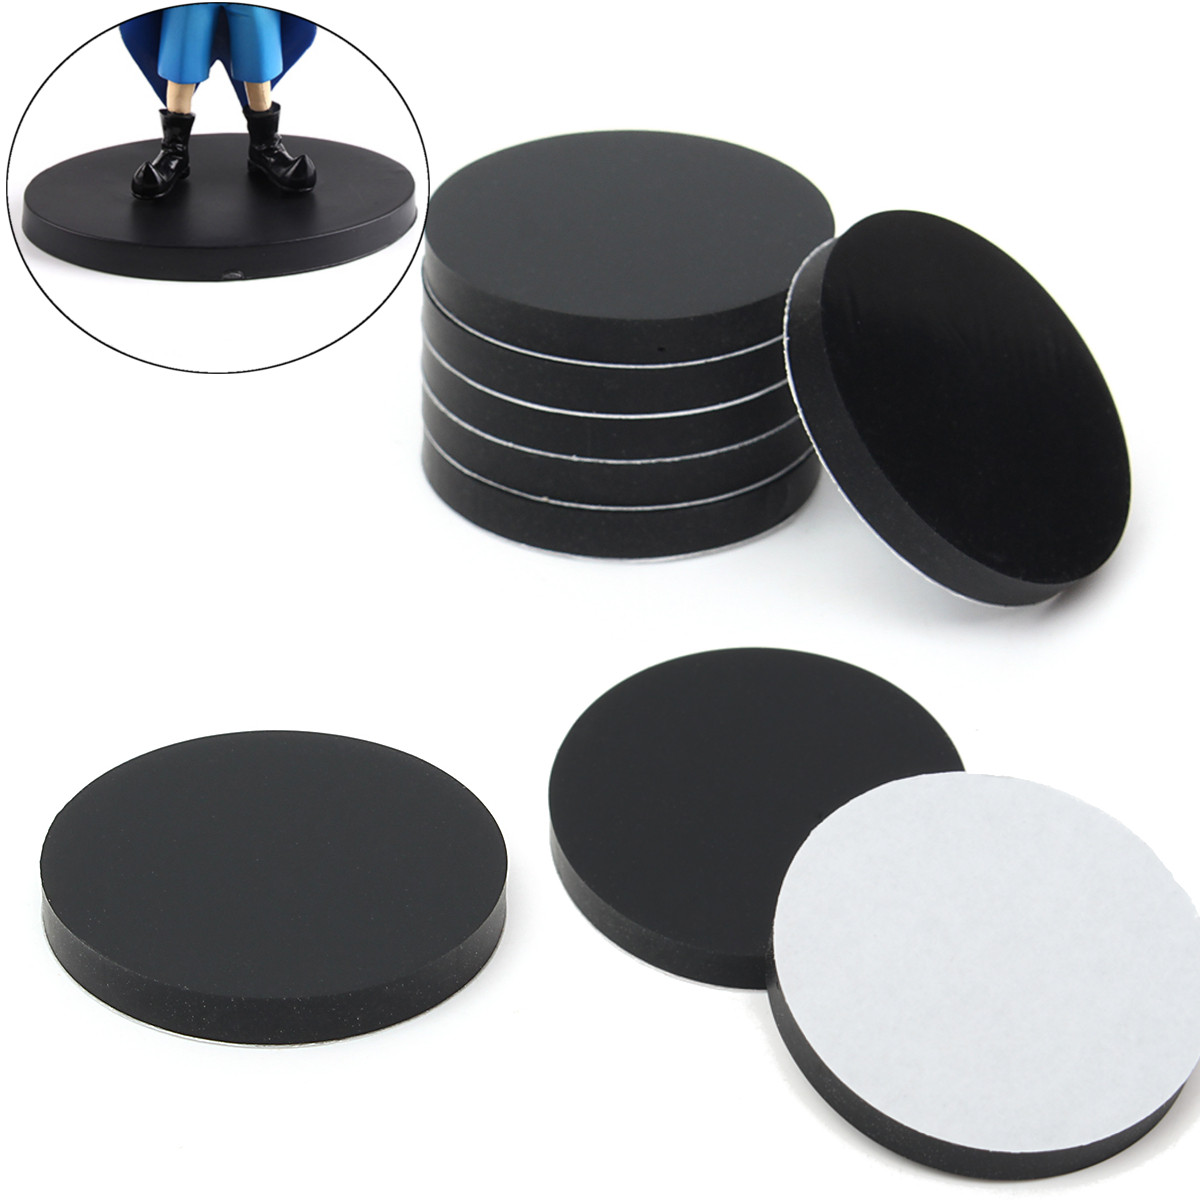 20Pcs 32mm Round Black Silicone Oval Model Bases Support for Wargames Table Games